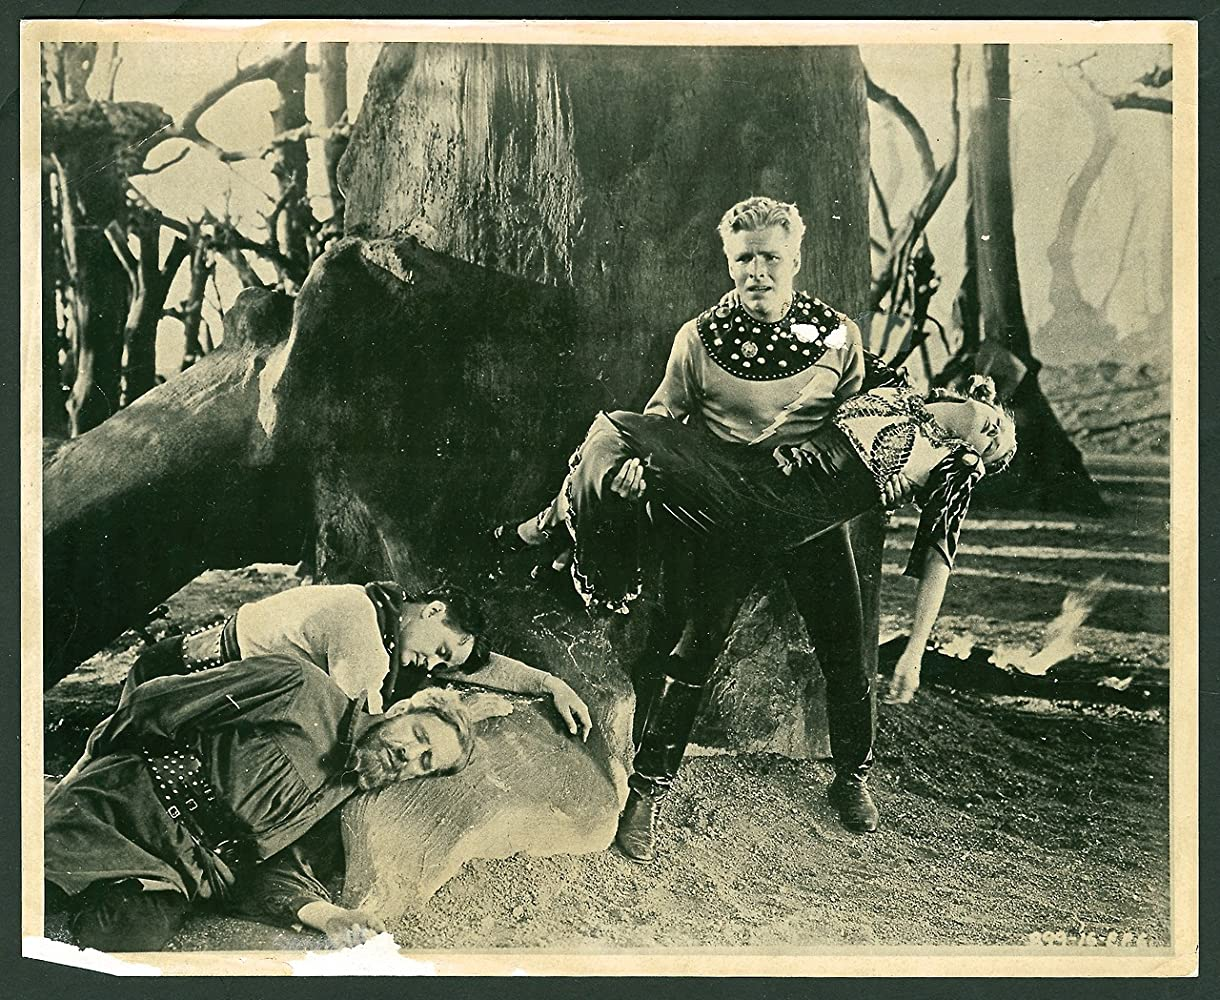 Buster Crabbe, Donald Kerr, Jean Rogers, and Frank Shannon in Flash Gordon's Trip to Mars (1938)